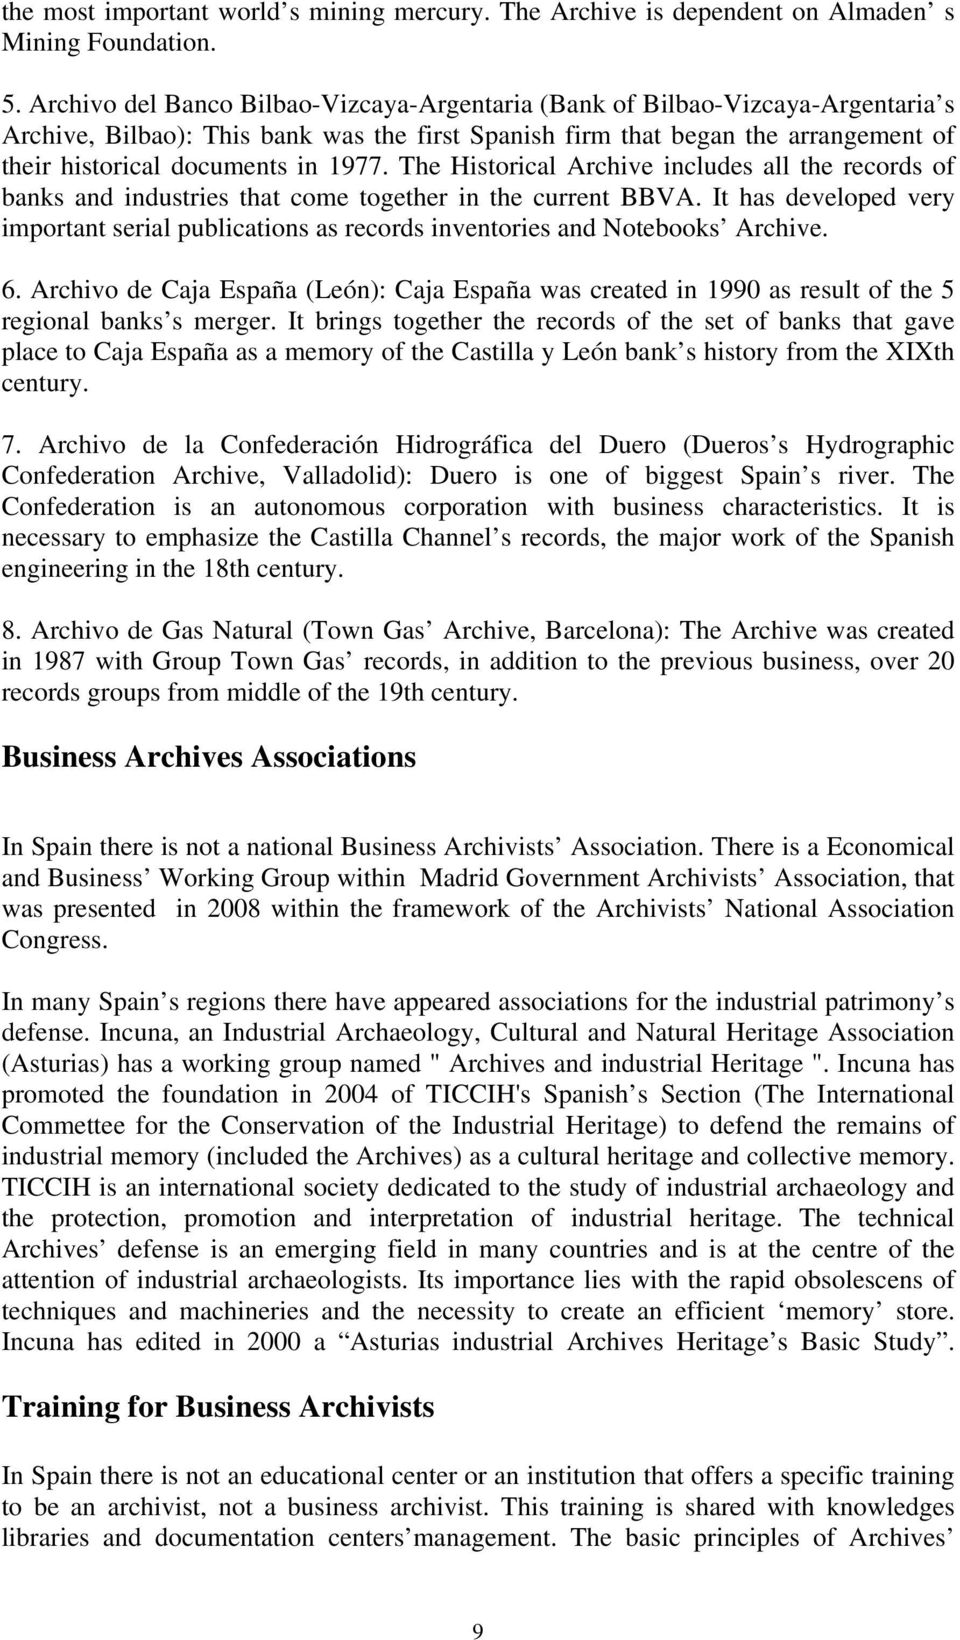 1977. The Historical Archive includes all the records of banks and industries that come together in the current BBVA.